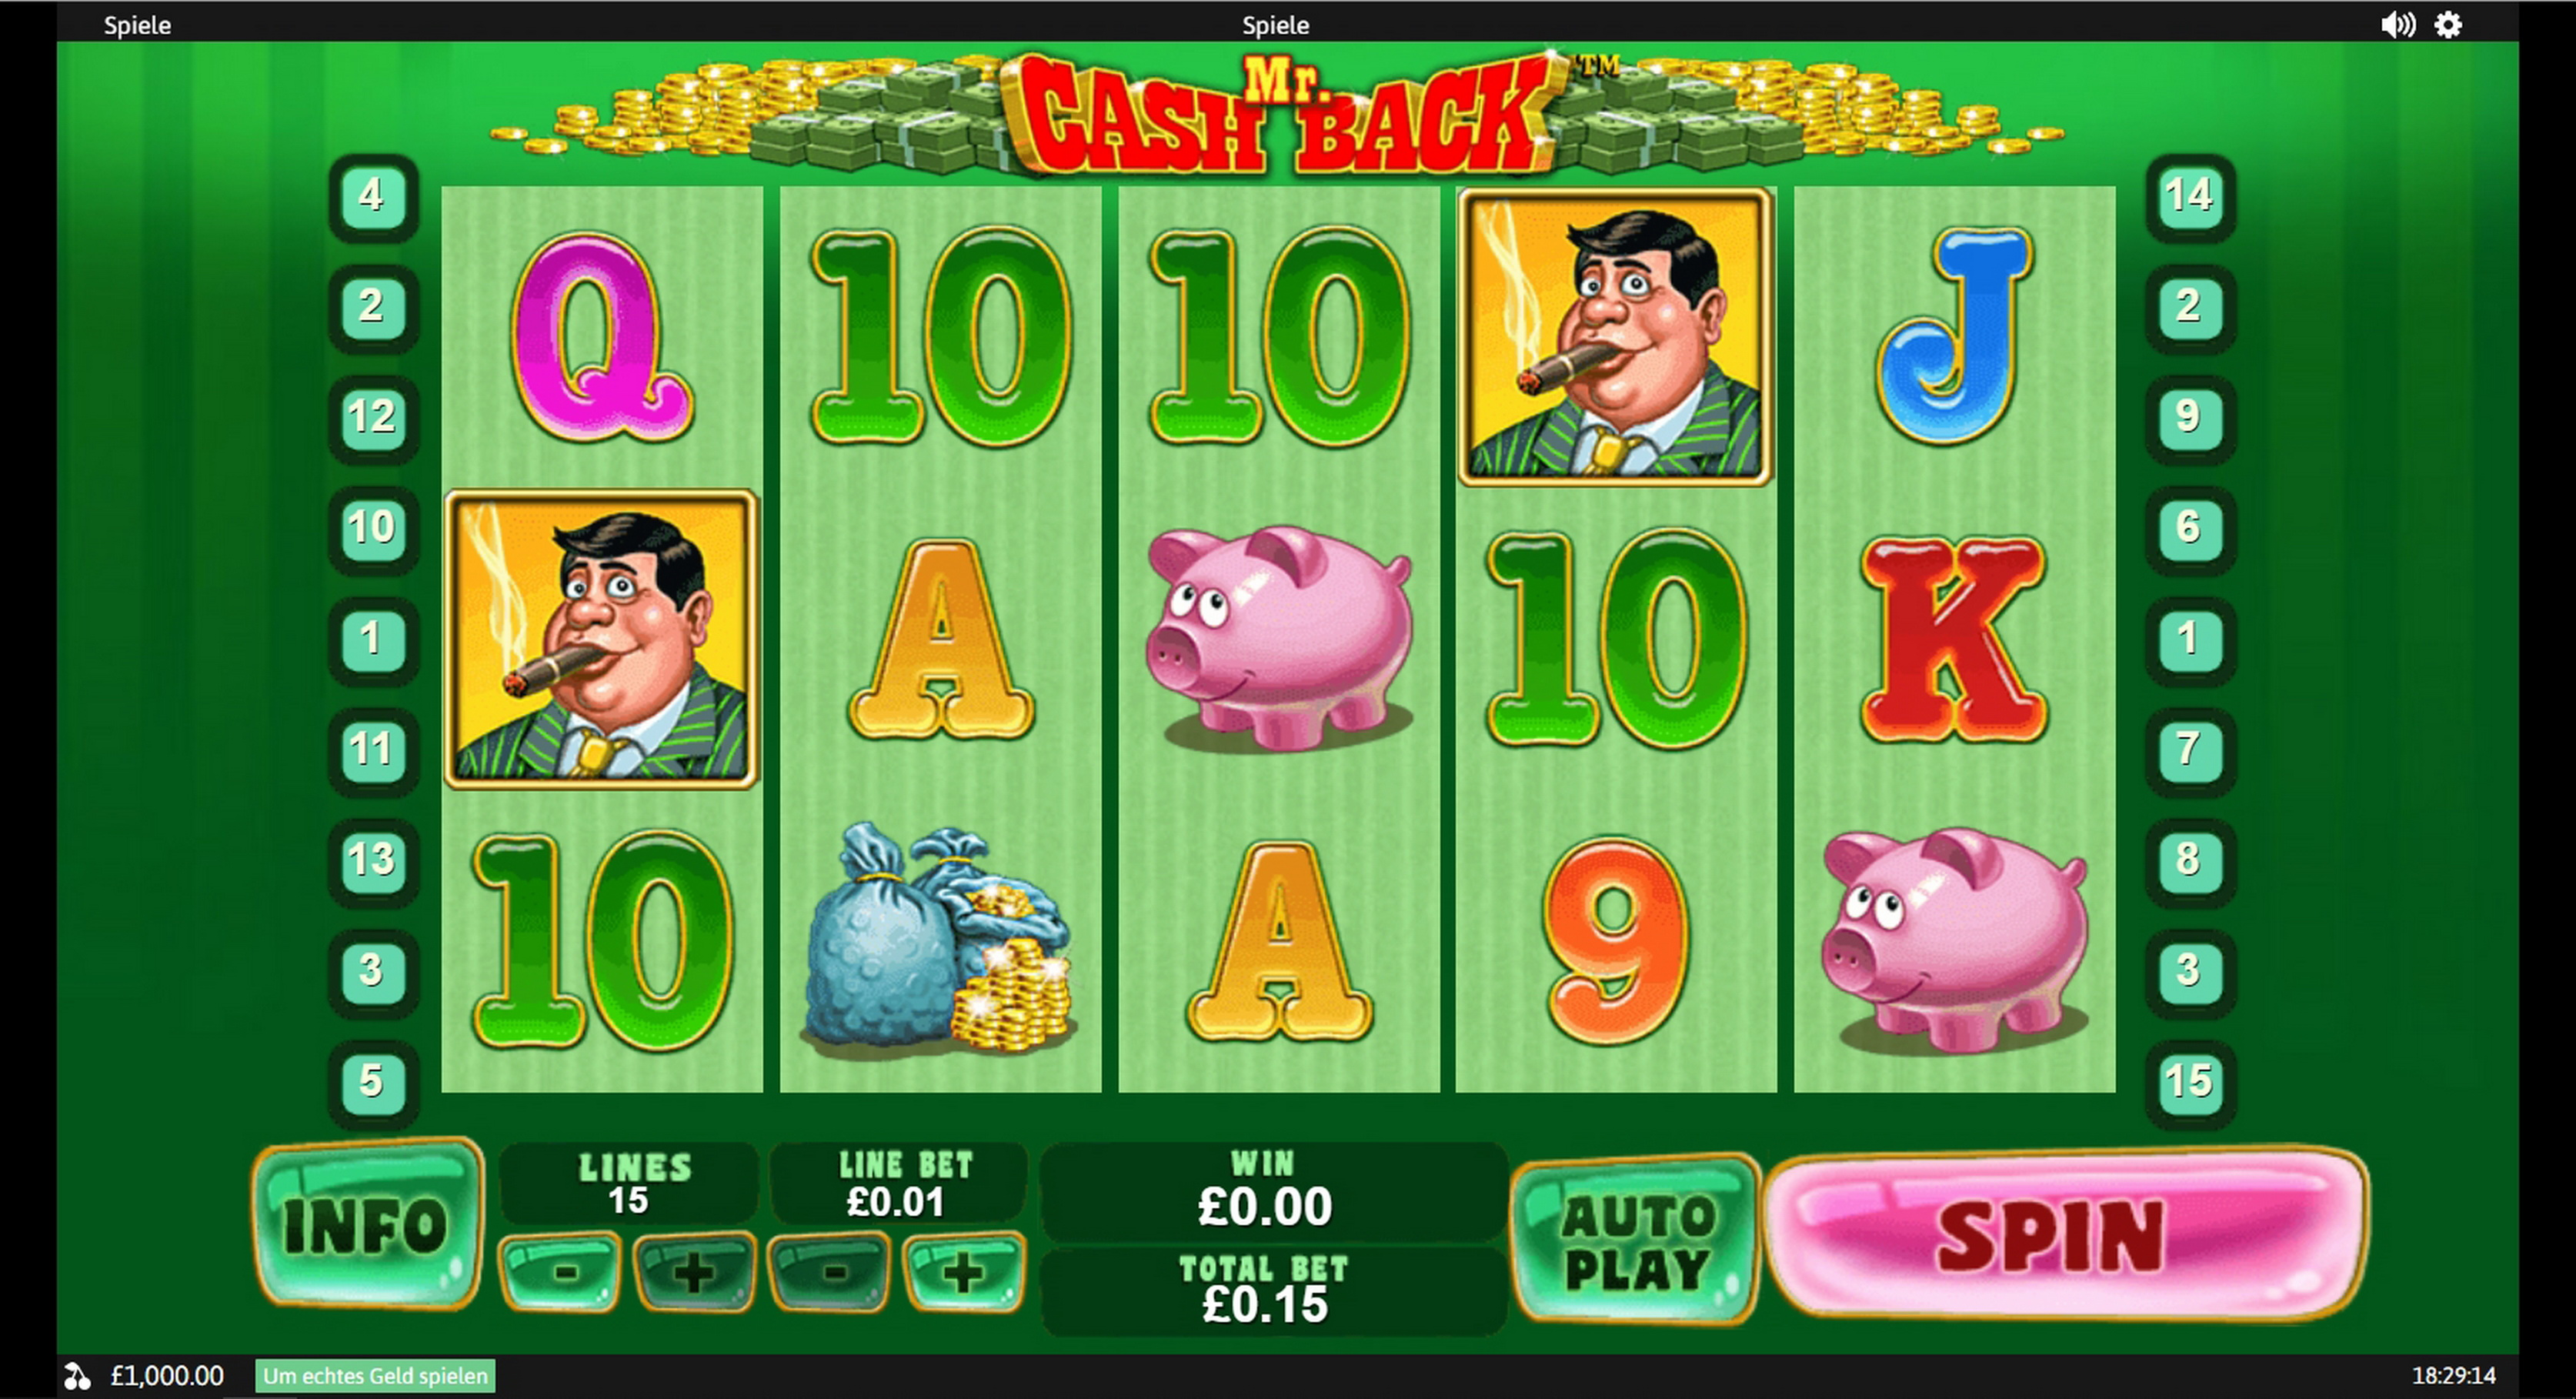 Reels in MR. Cashback Slot Game by Playtech